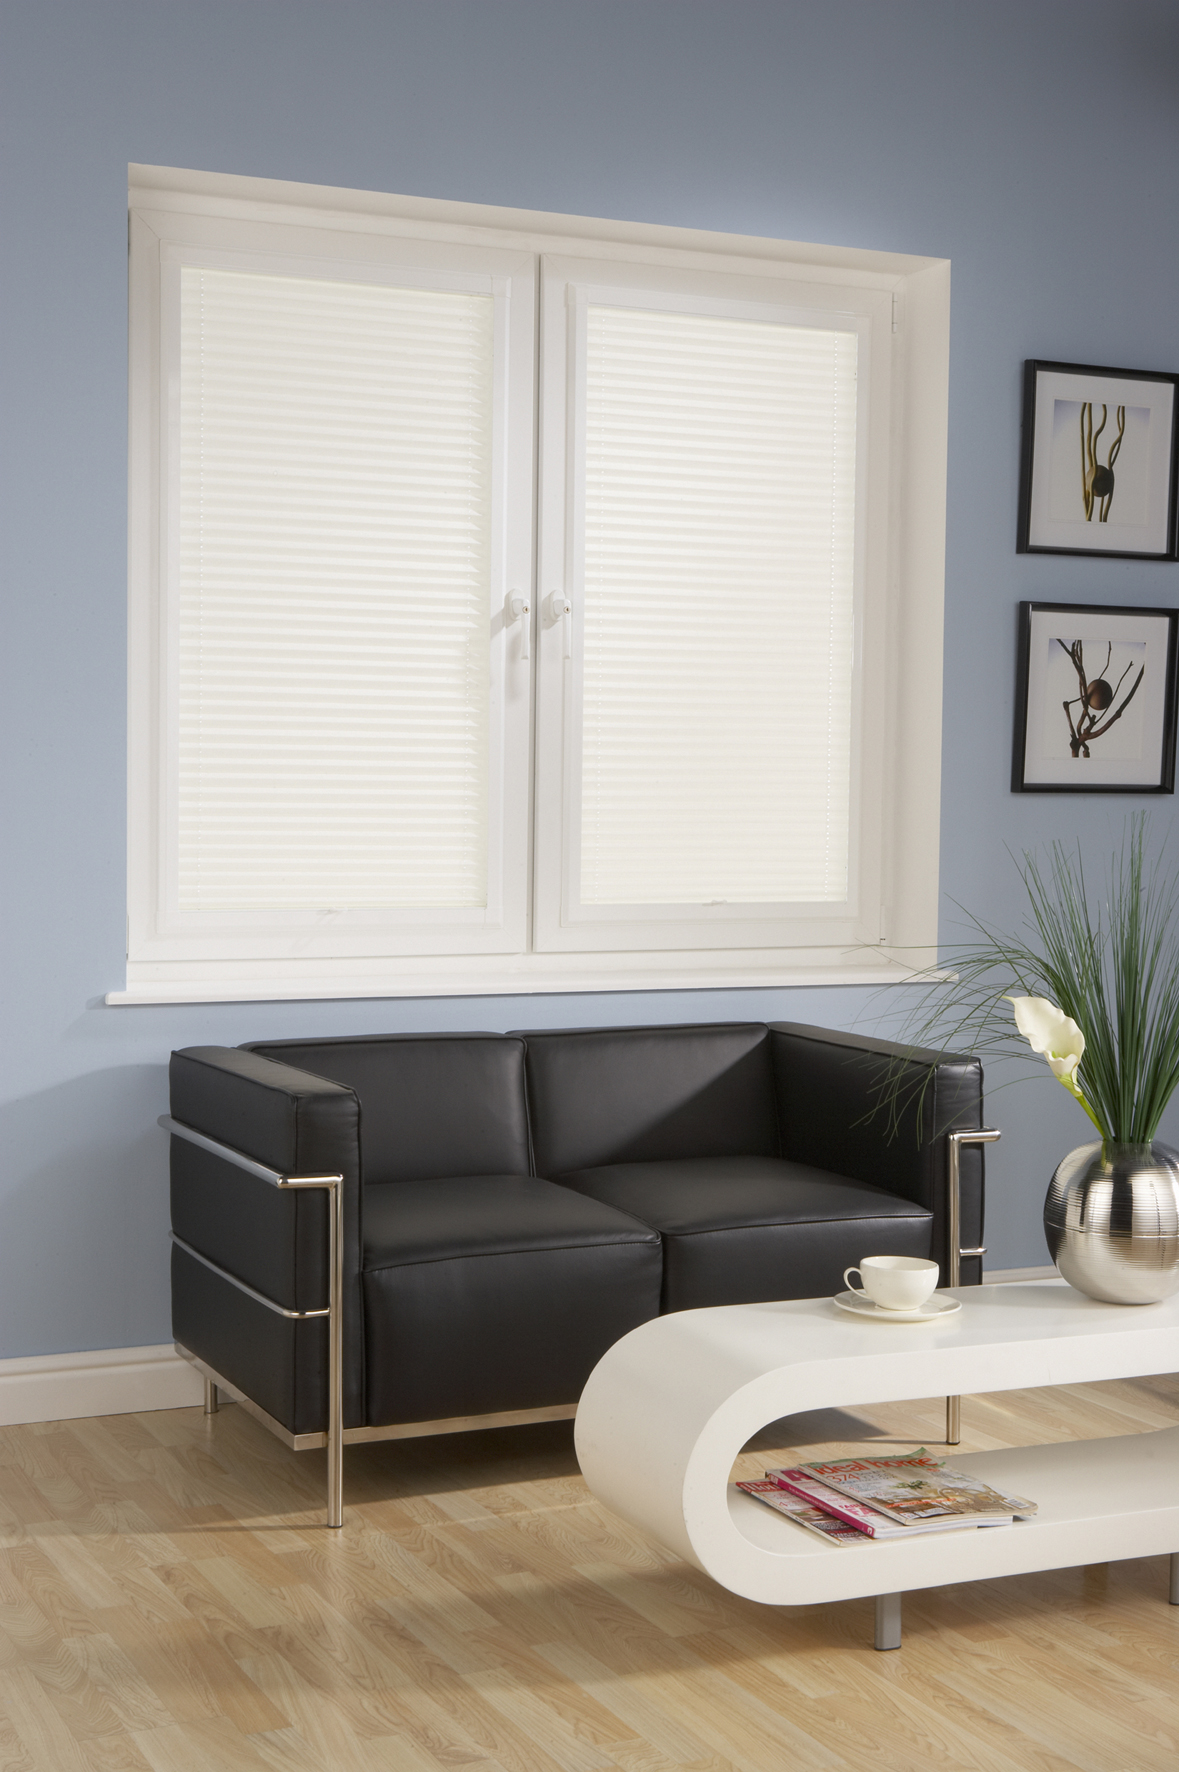 window tall real out this decorative shutters wood was arched drape but louvered turned huge wide drapes with louver ft frame pin beautifully by